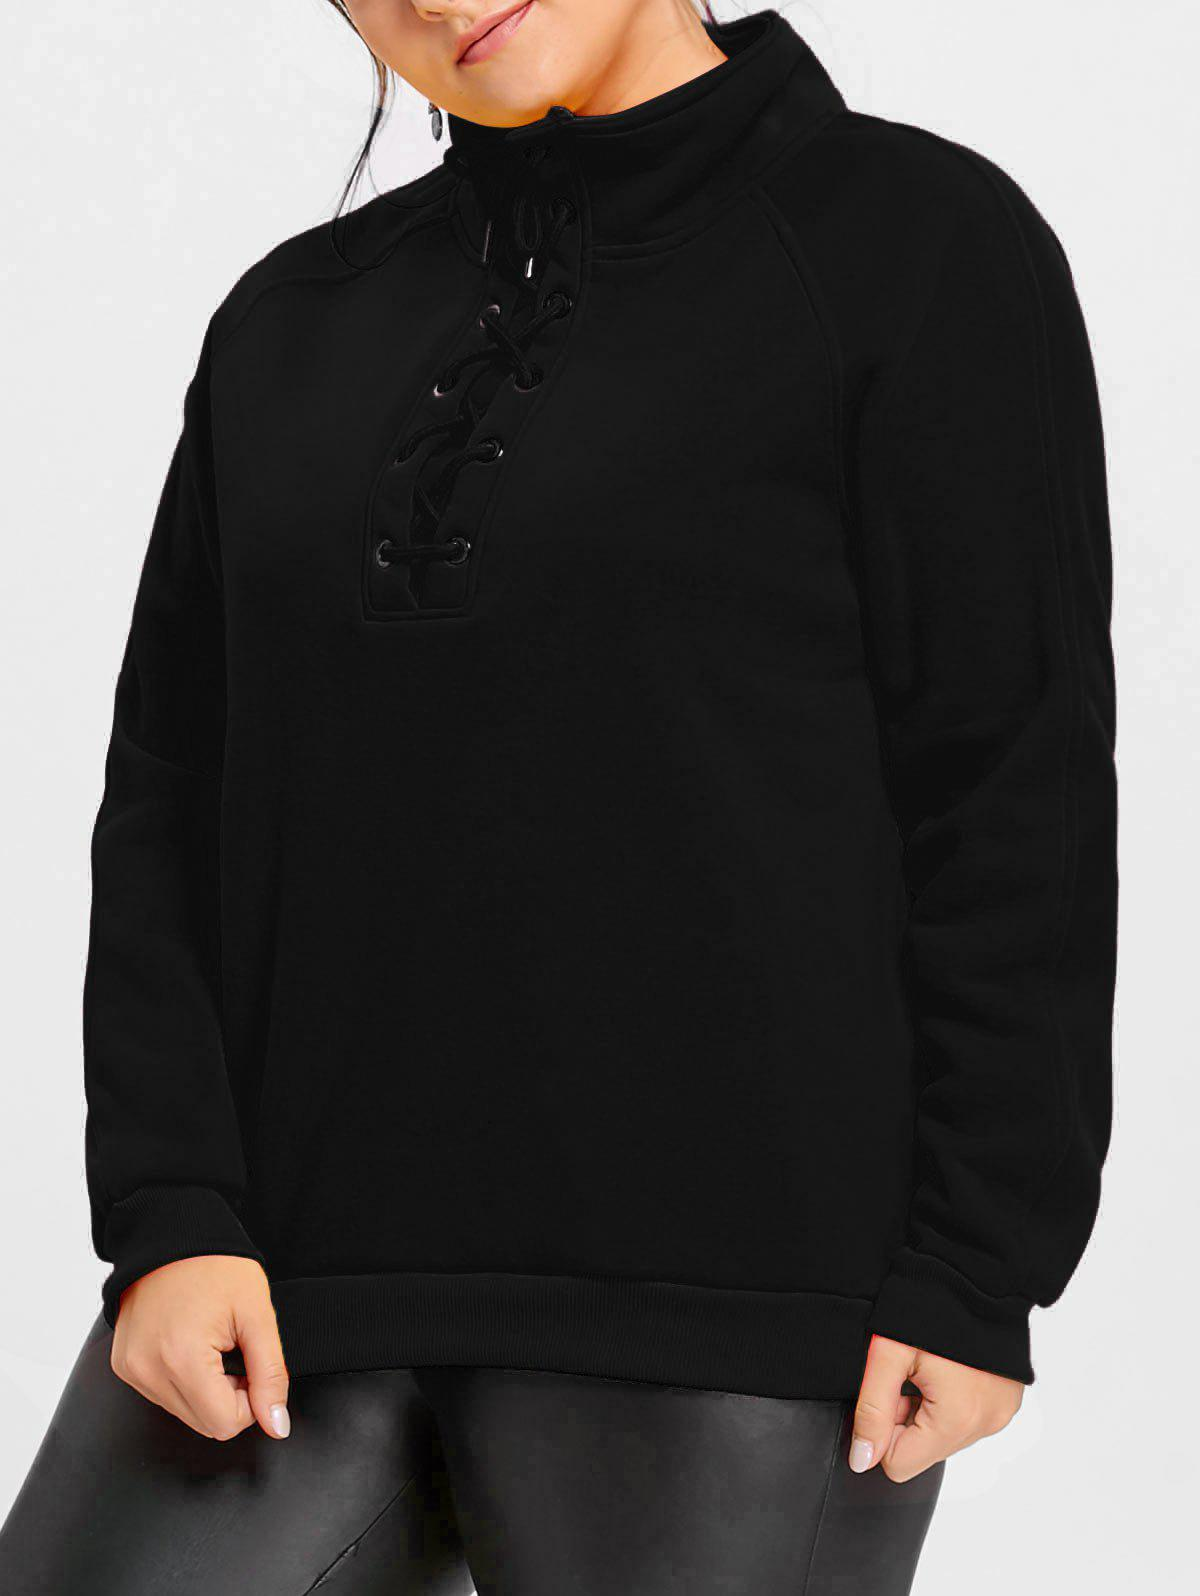 Hot Plus Size Lace Up Fleece Lined Sweatshirt